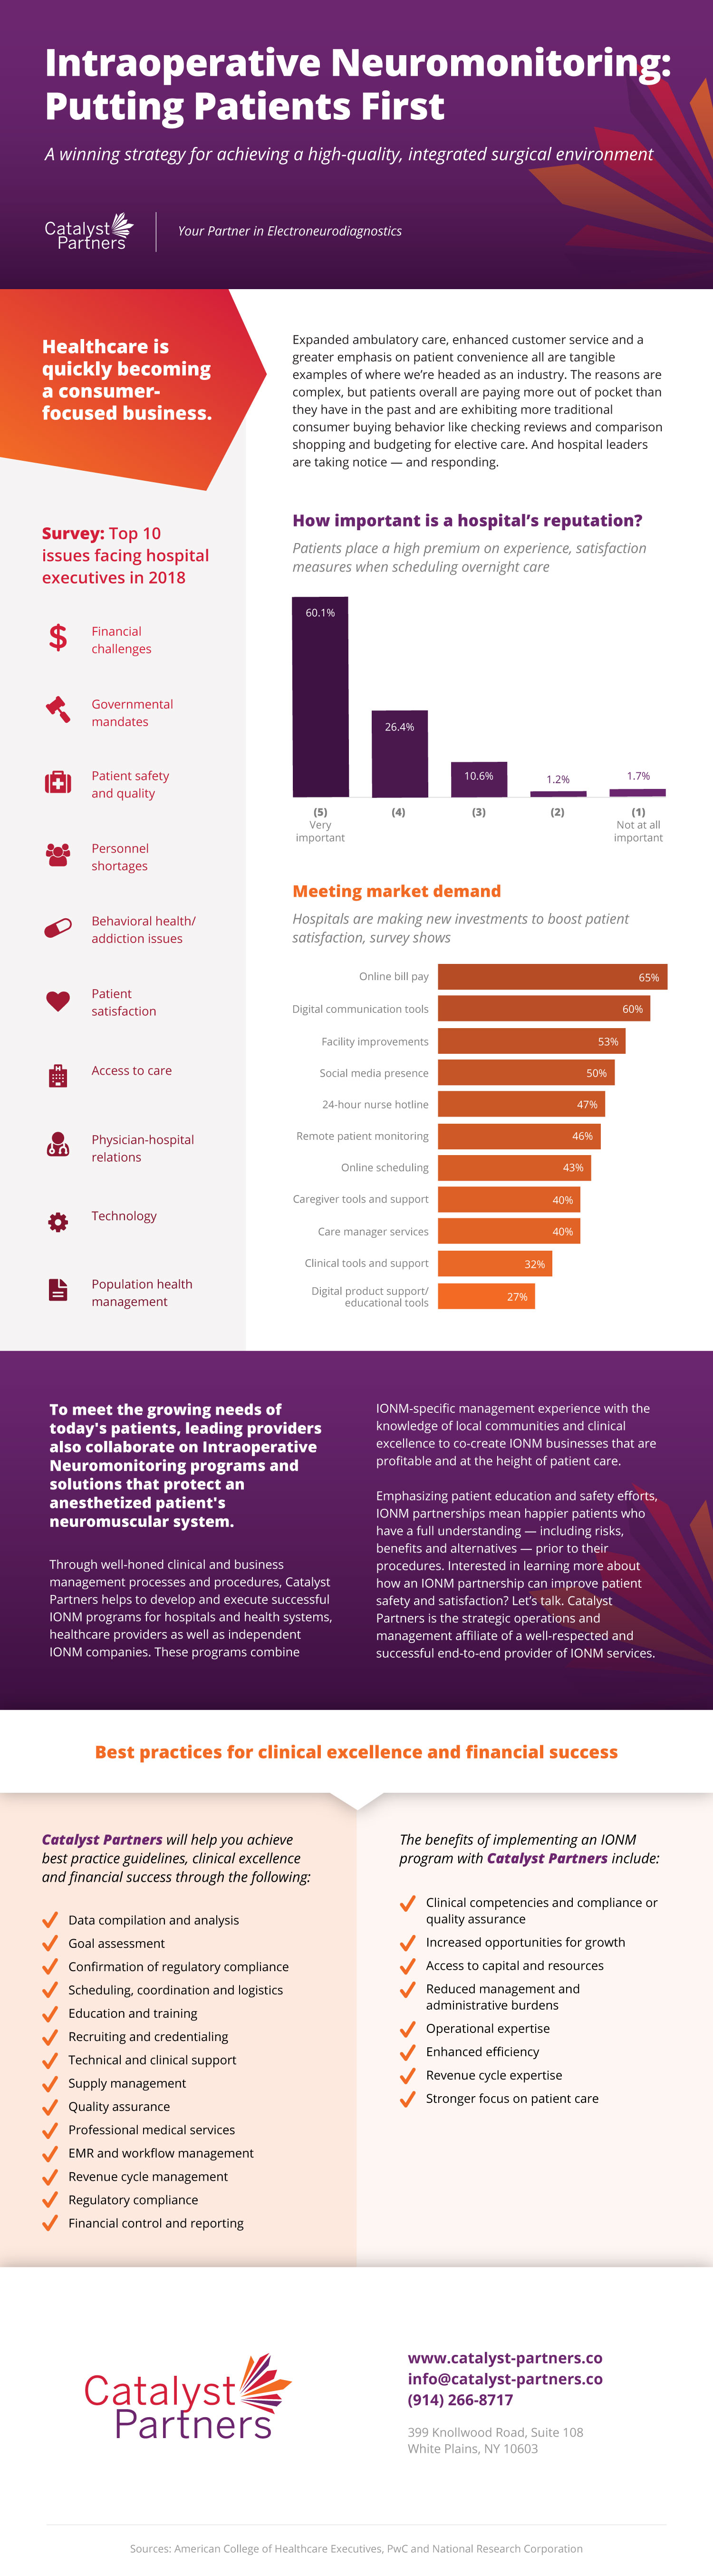 Catalyst-infographic-patient-safety-and-satisfaction